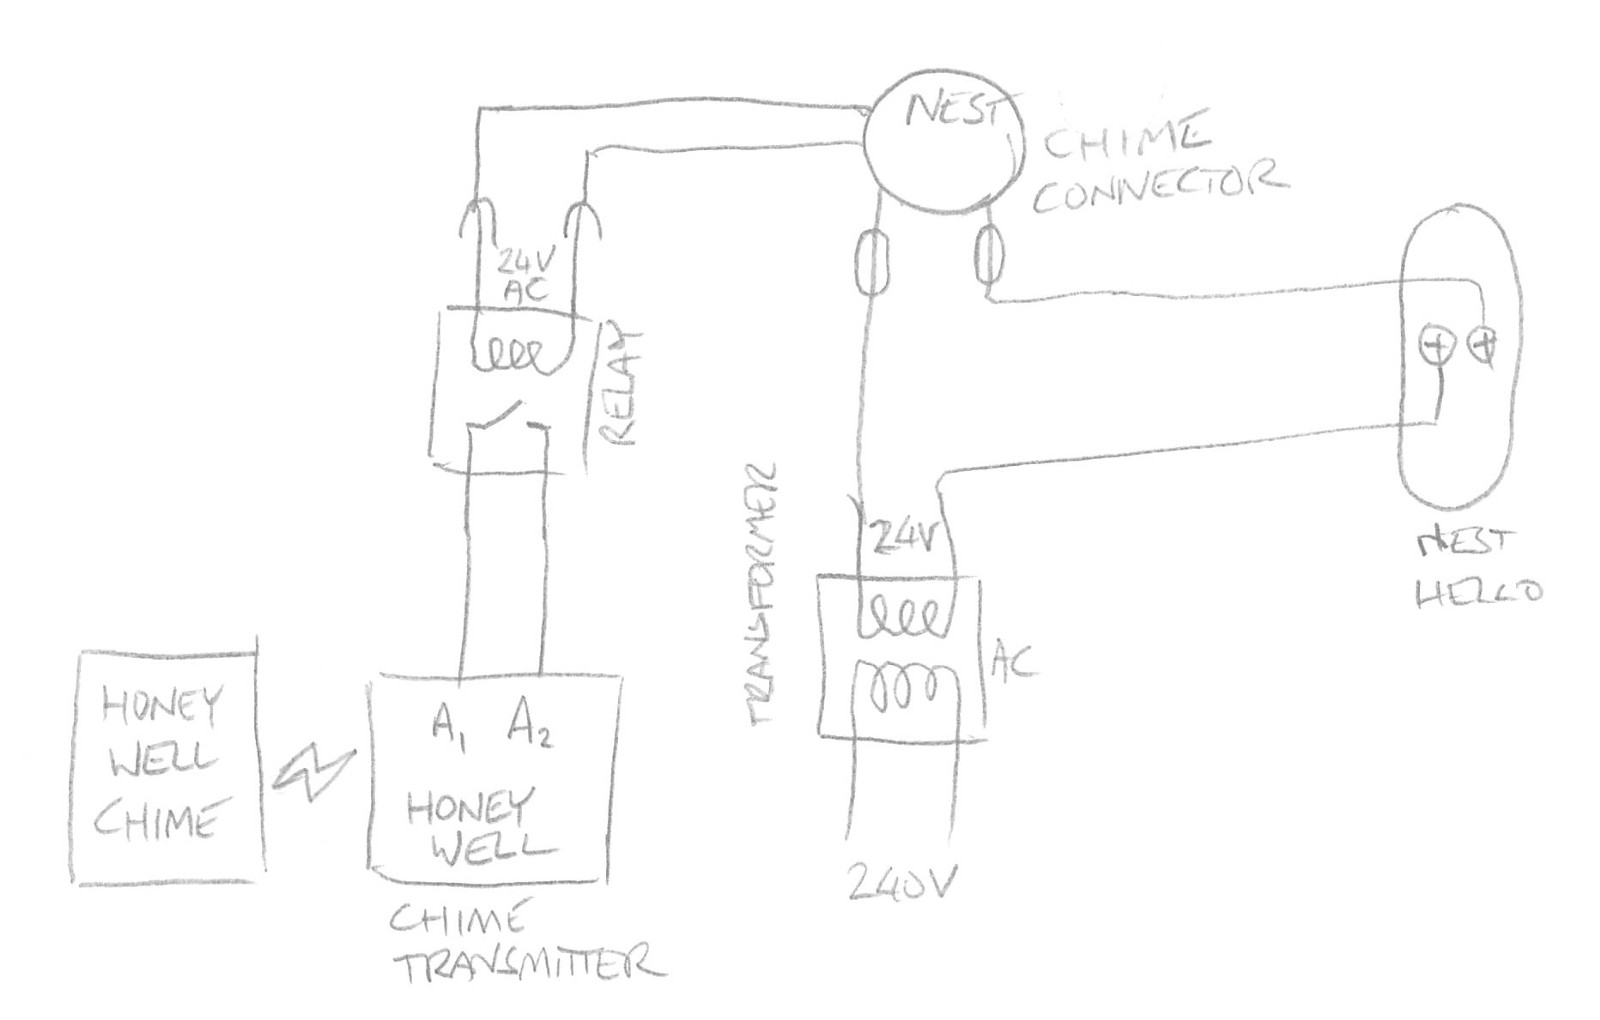 Nest Chime Connector Wiring Diagram 3 Wire